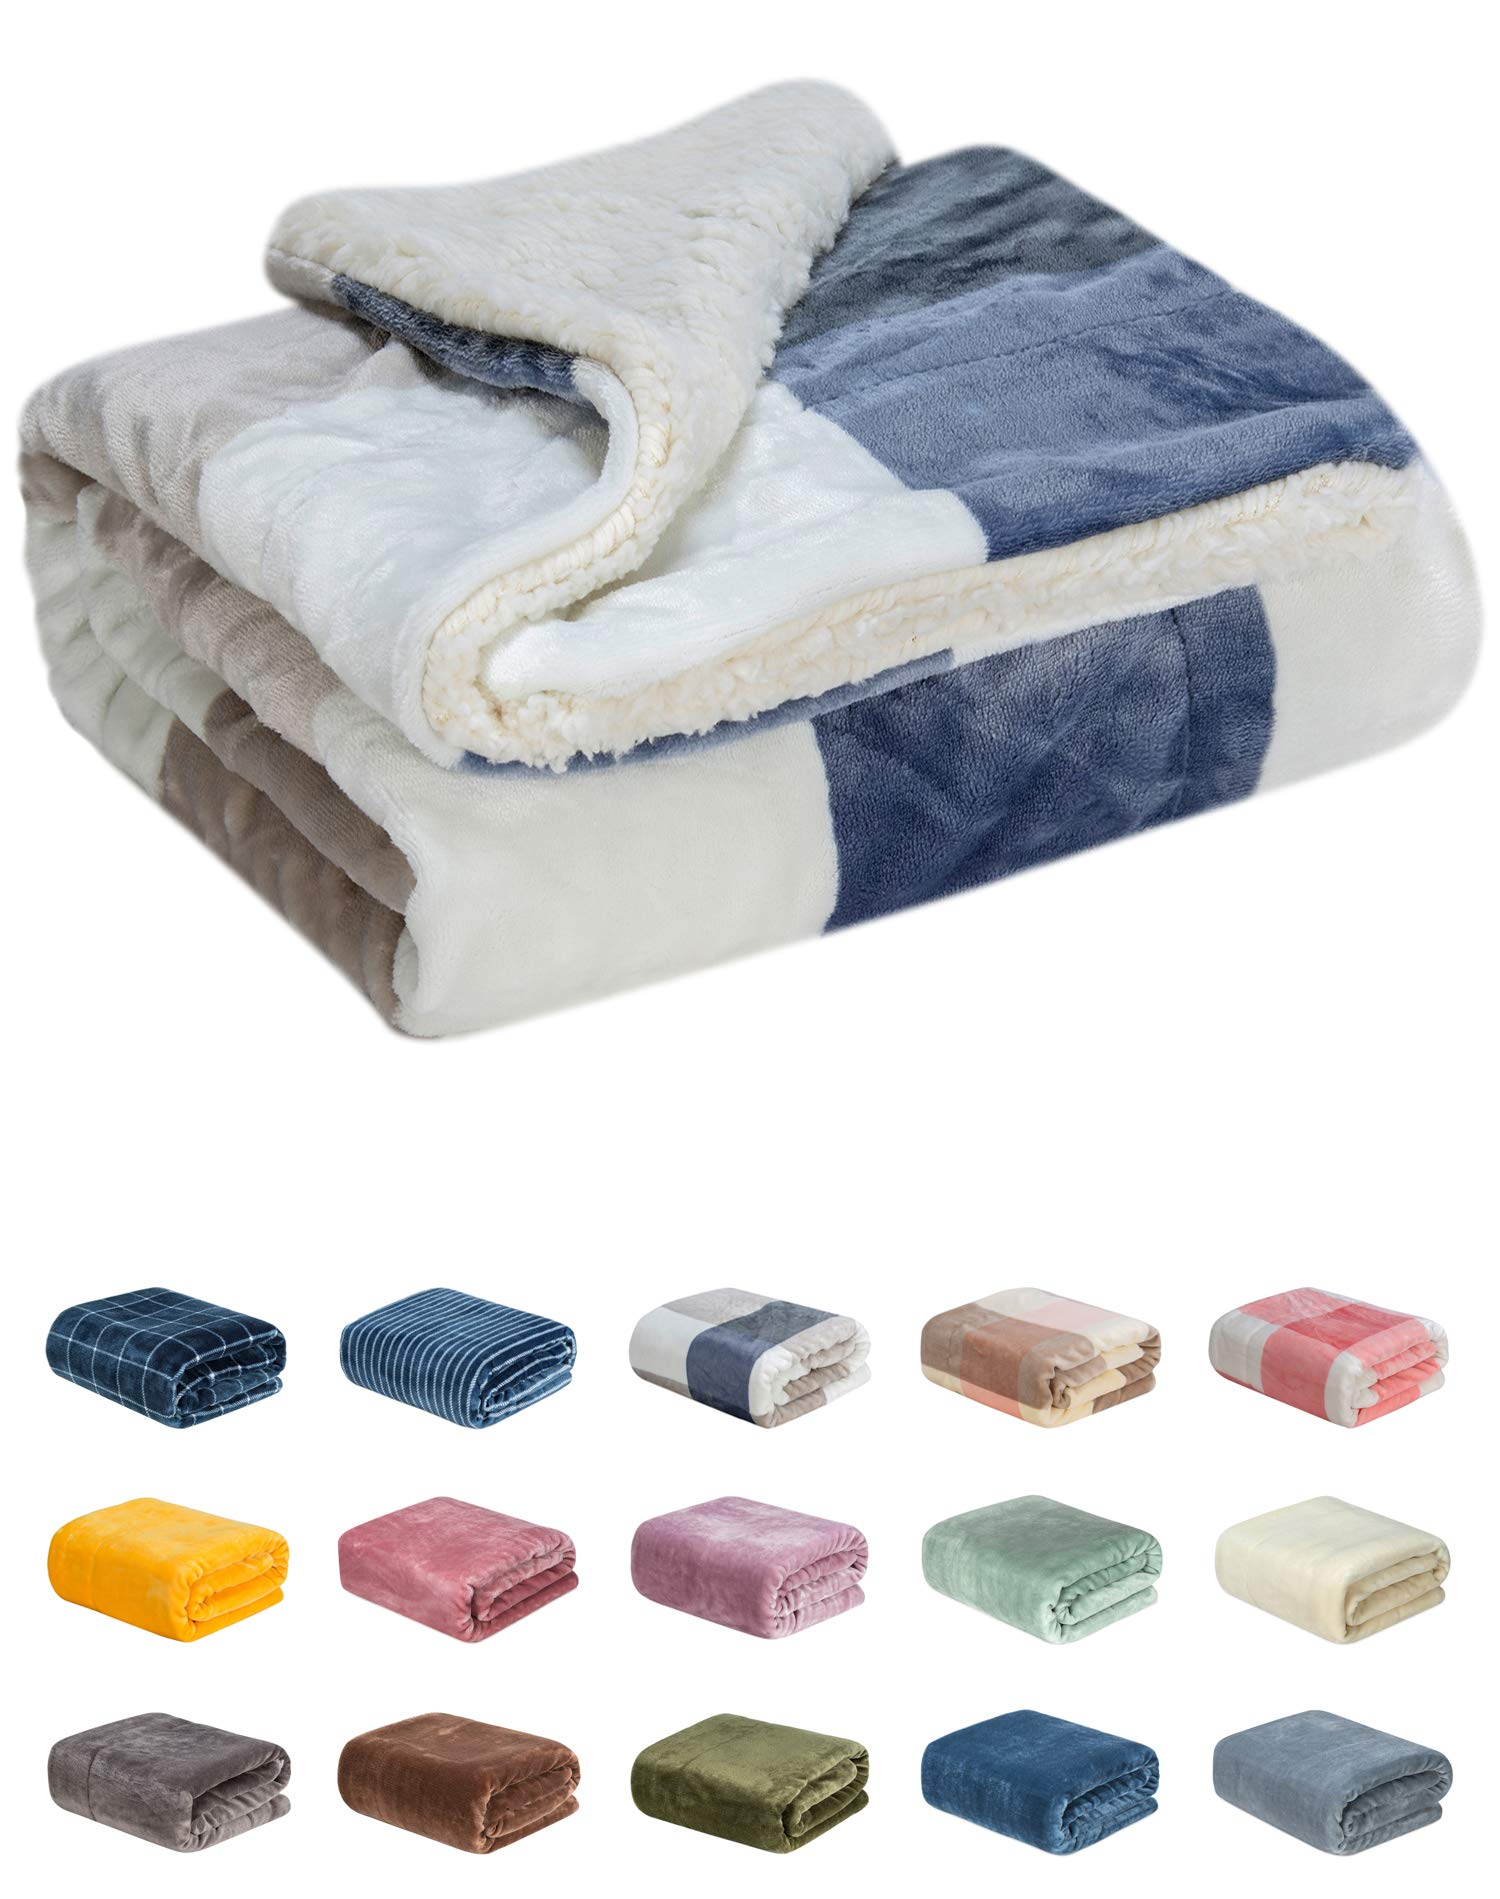 WONDER MIRACLE Fuzzy Sherpa Double Layers Super Thick and Warm Fleece Reversible Infant,Baby,Toddler,pet Blanket for Crib, Stroller, Travel, Couch and Bed (40Wx50L, S-Blue Grid)